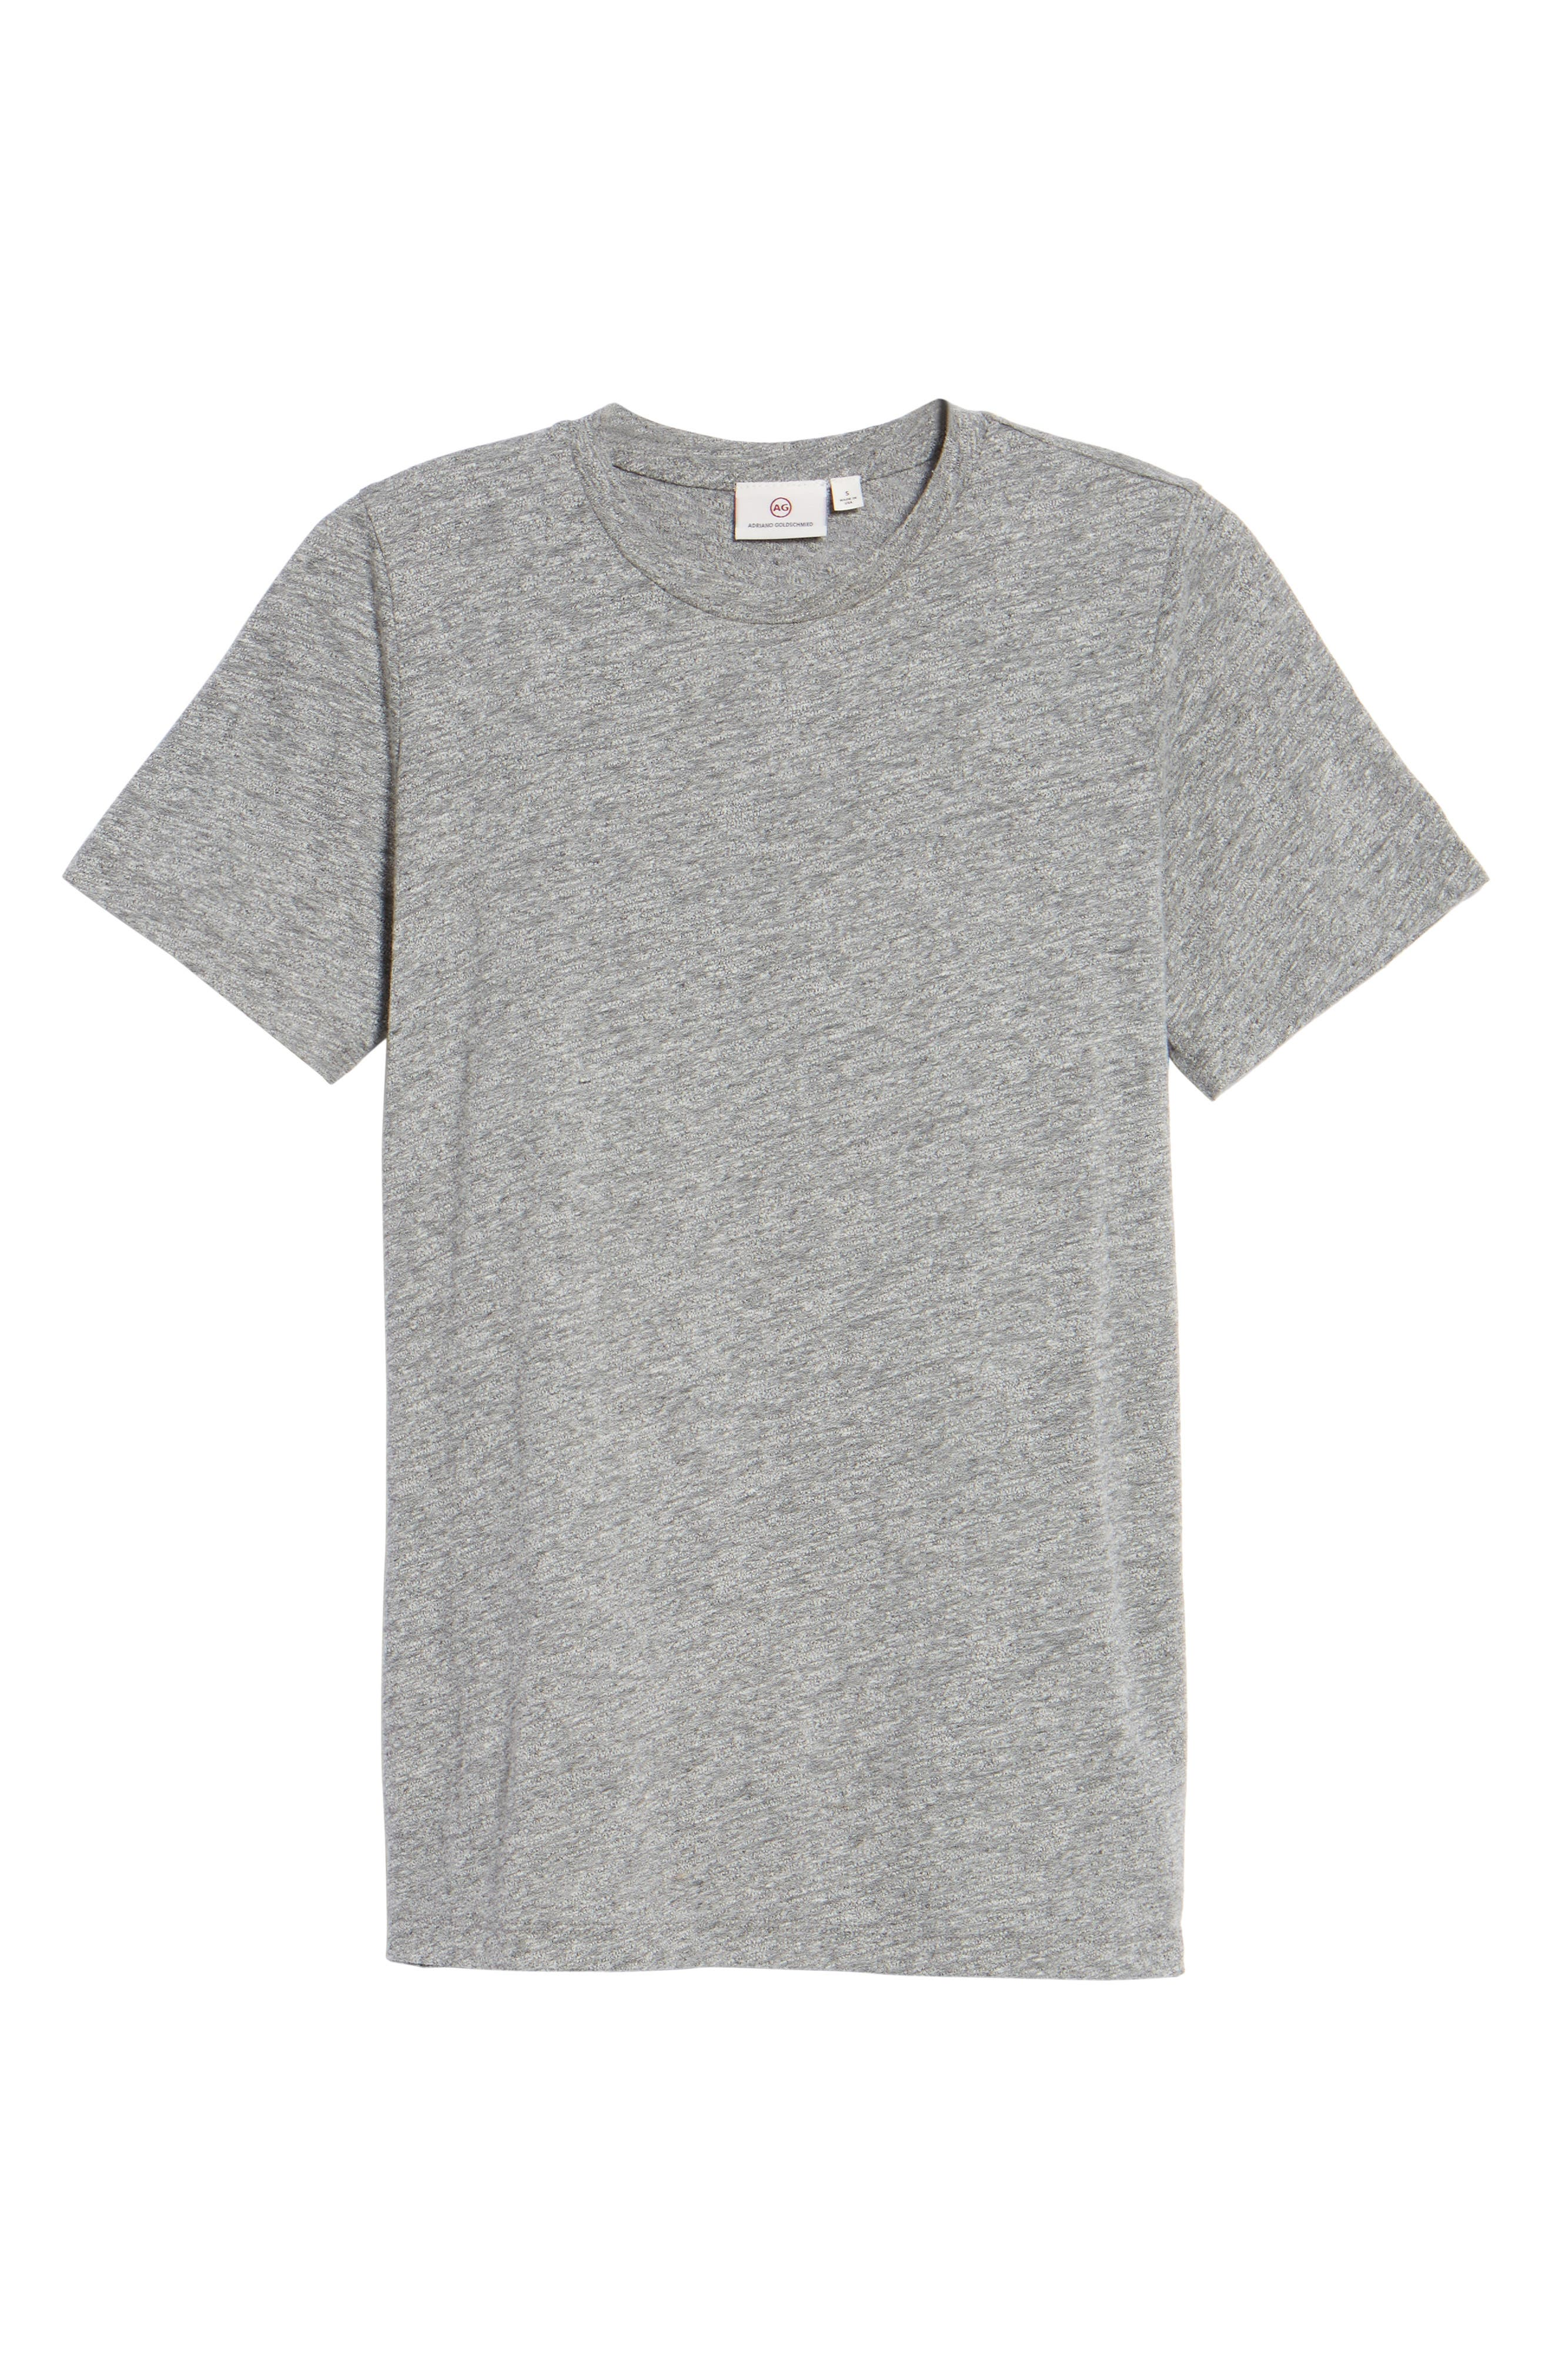 Gray Boyfriend Tee,                             Alternate thumbnail 6, color,                             SPECKLED HEATHER GREY